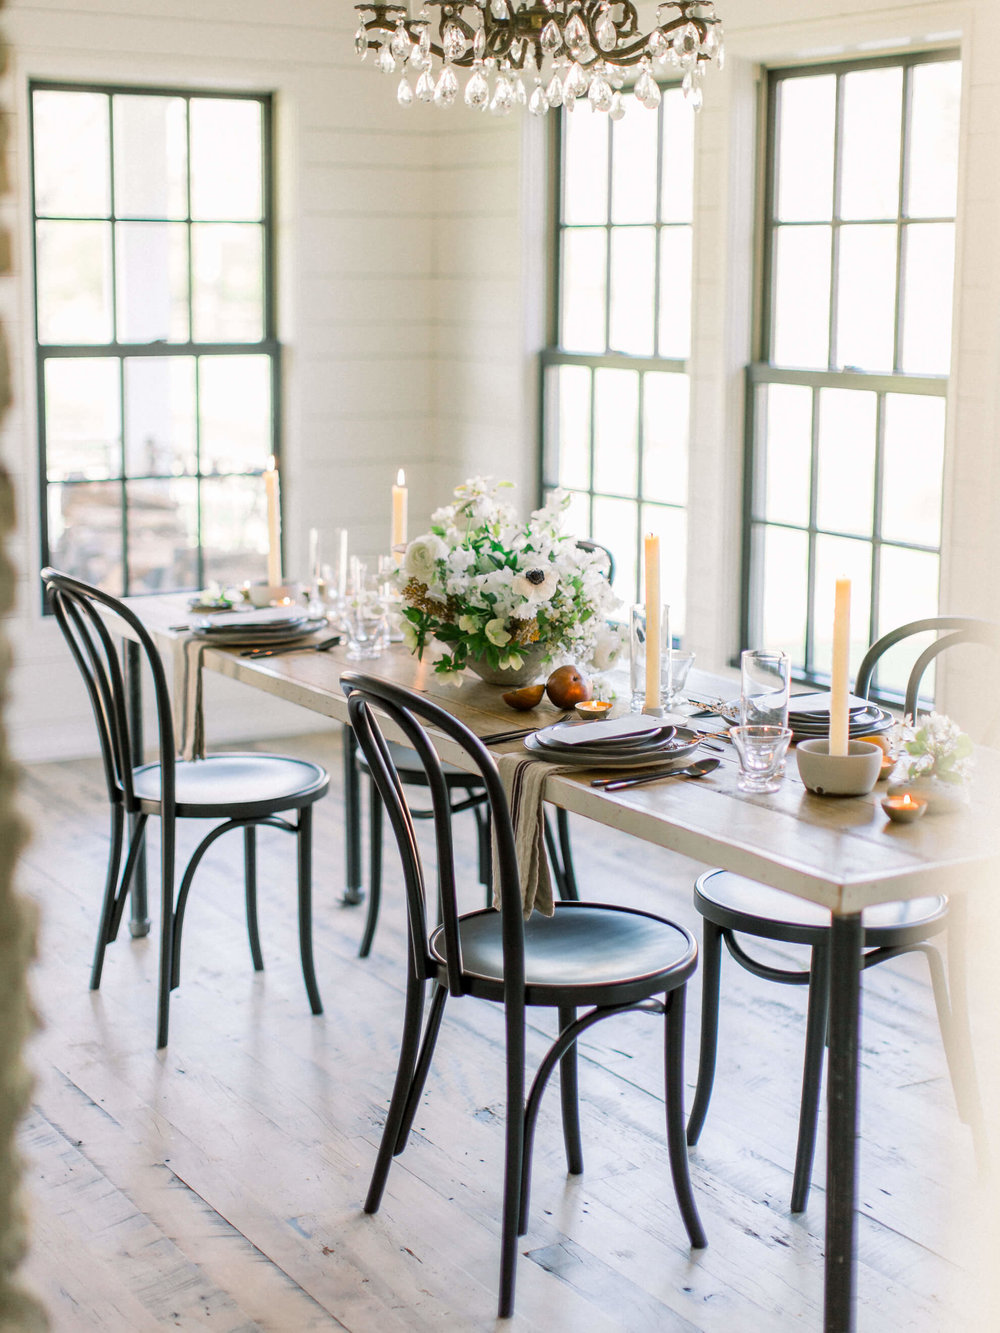 Winter Farmhouse Wedding - Our inspiration for this shoot came as the bareness of winter slowly transitions into the first blooms of spring. We designed with a harmonious color palette of soft whites paired with elegant grays, and deep blush tones with subtle hints of black. The details included a marriage of modern handmade ceramics, moody candlelight, the clean lines of black cafe chairs, florals created with heirloom roses and quince, and feminine blooms of light and airy sweet pea and anemone. Read the full blog article on JoyWed.